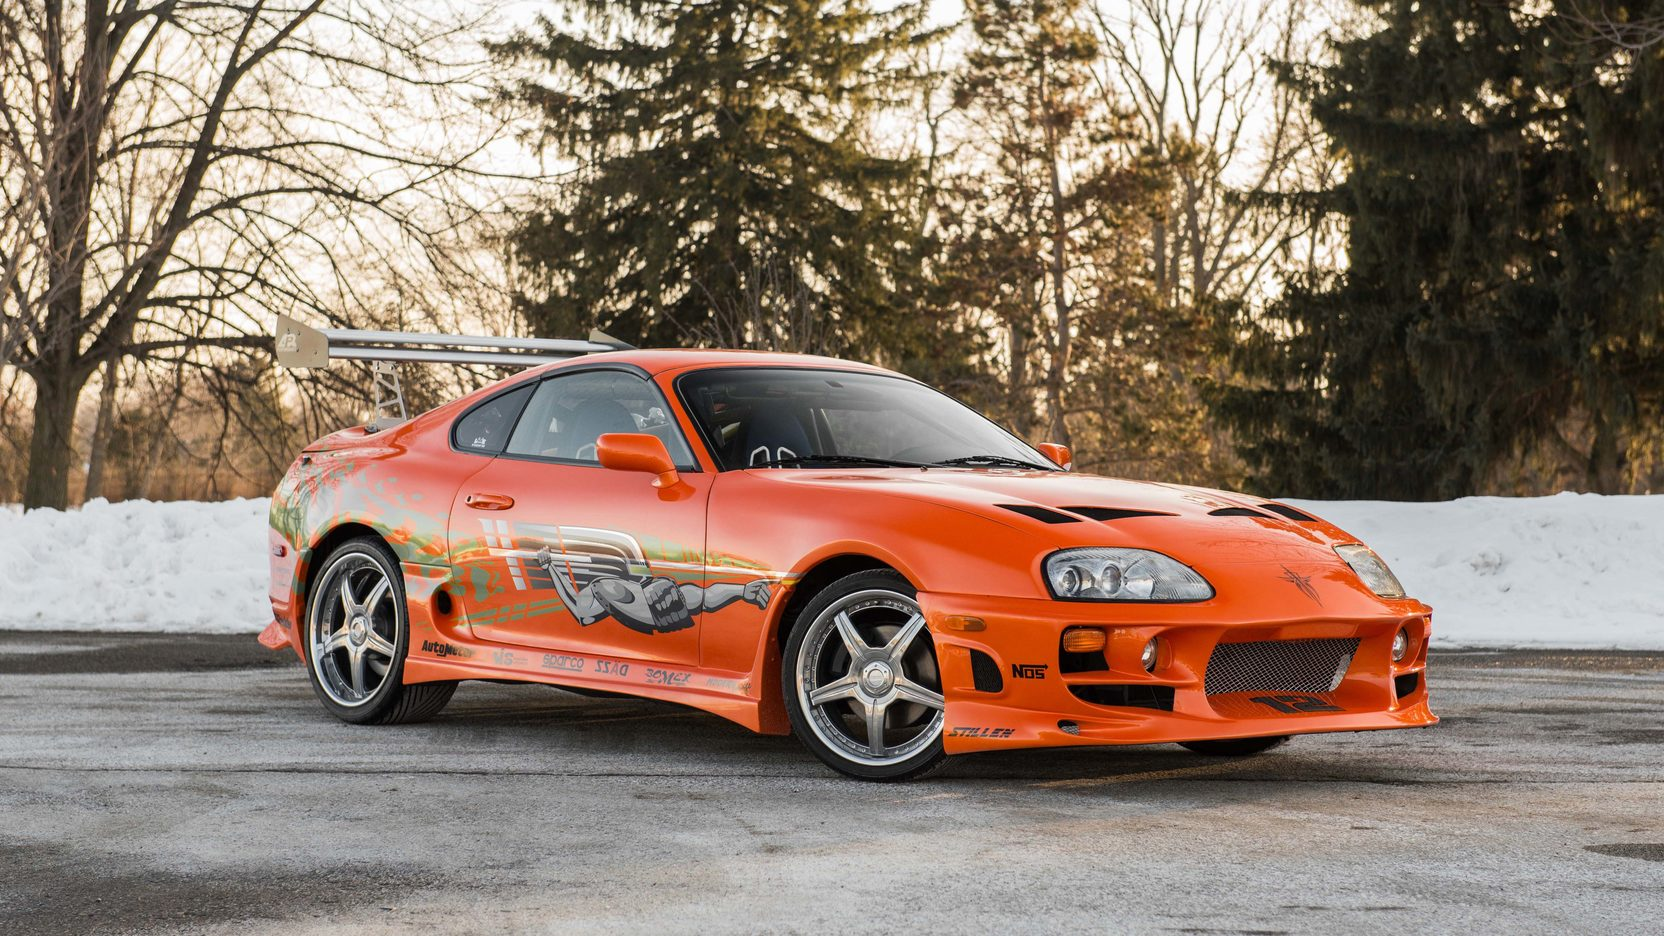 The Fast & The Furious, 'Fast & Furious' still driving some car prices nearly 20 years later, ClassicCars.com Journal